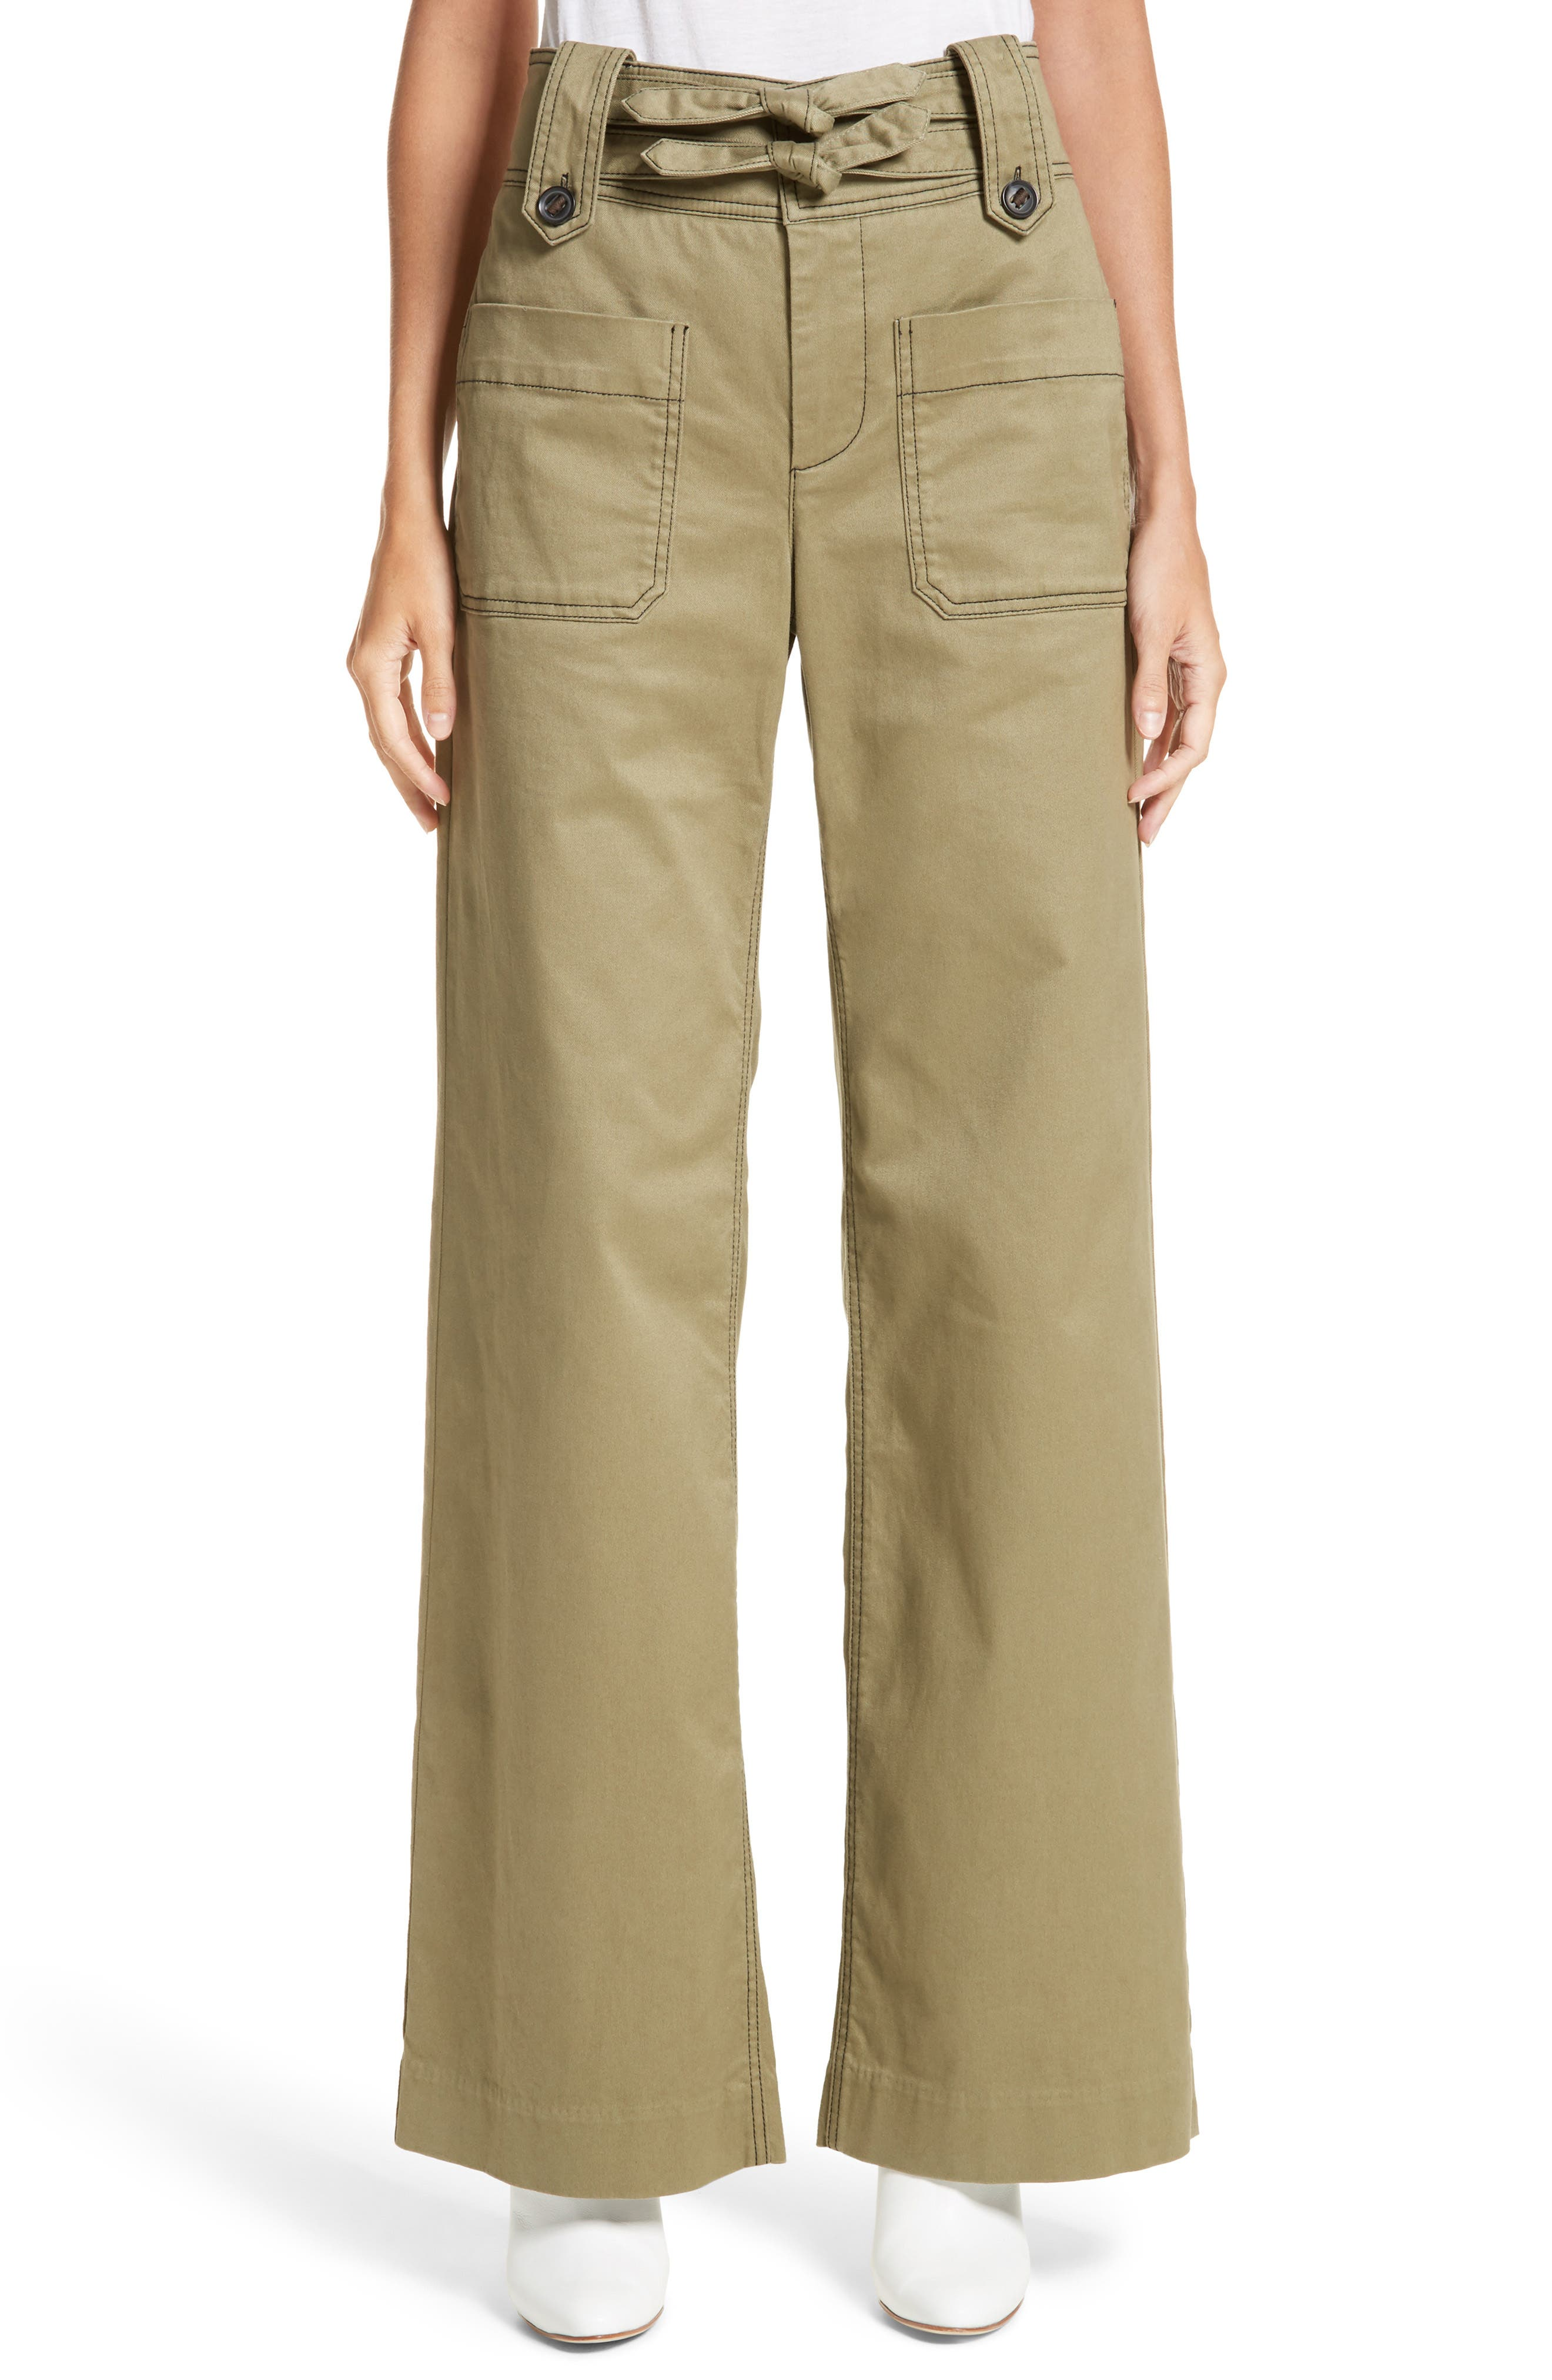 Alternate Image 1 Selected - Rebecca Taylor High Waist Twill Pants